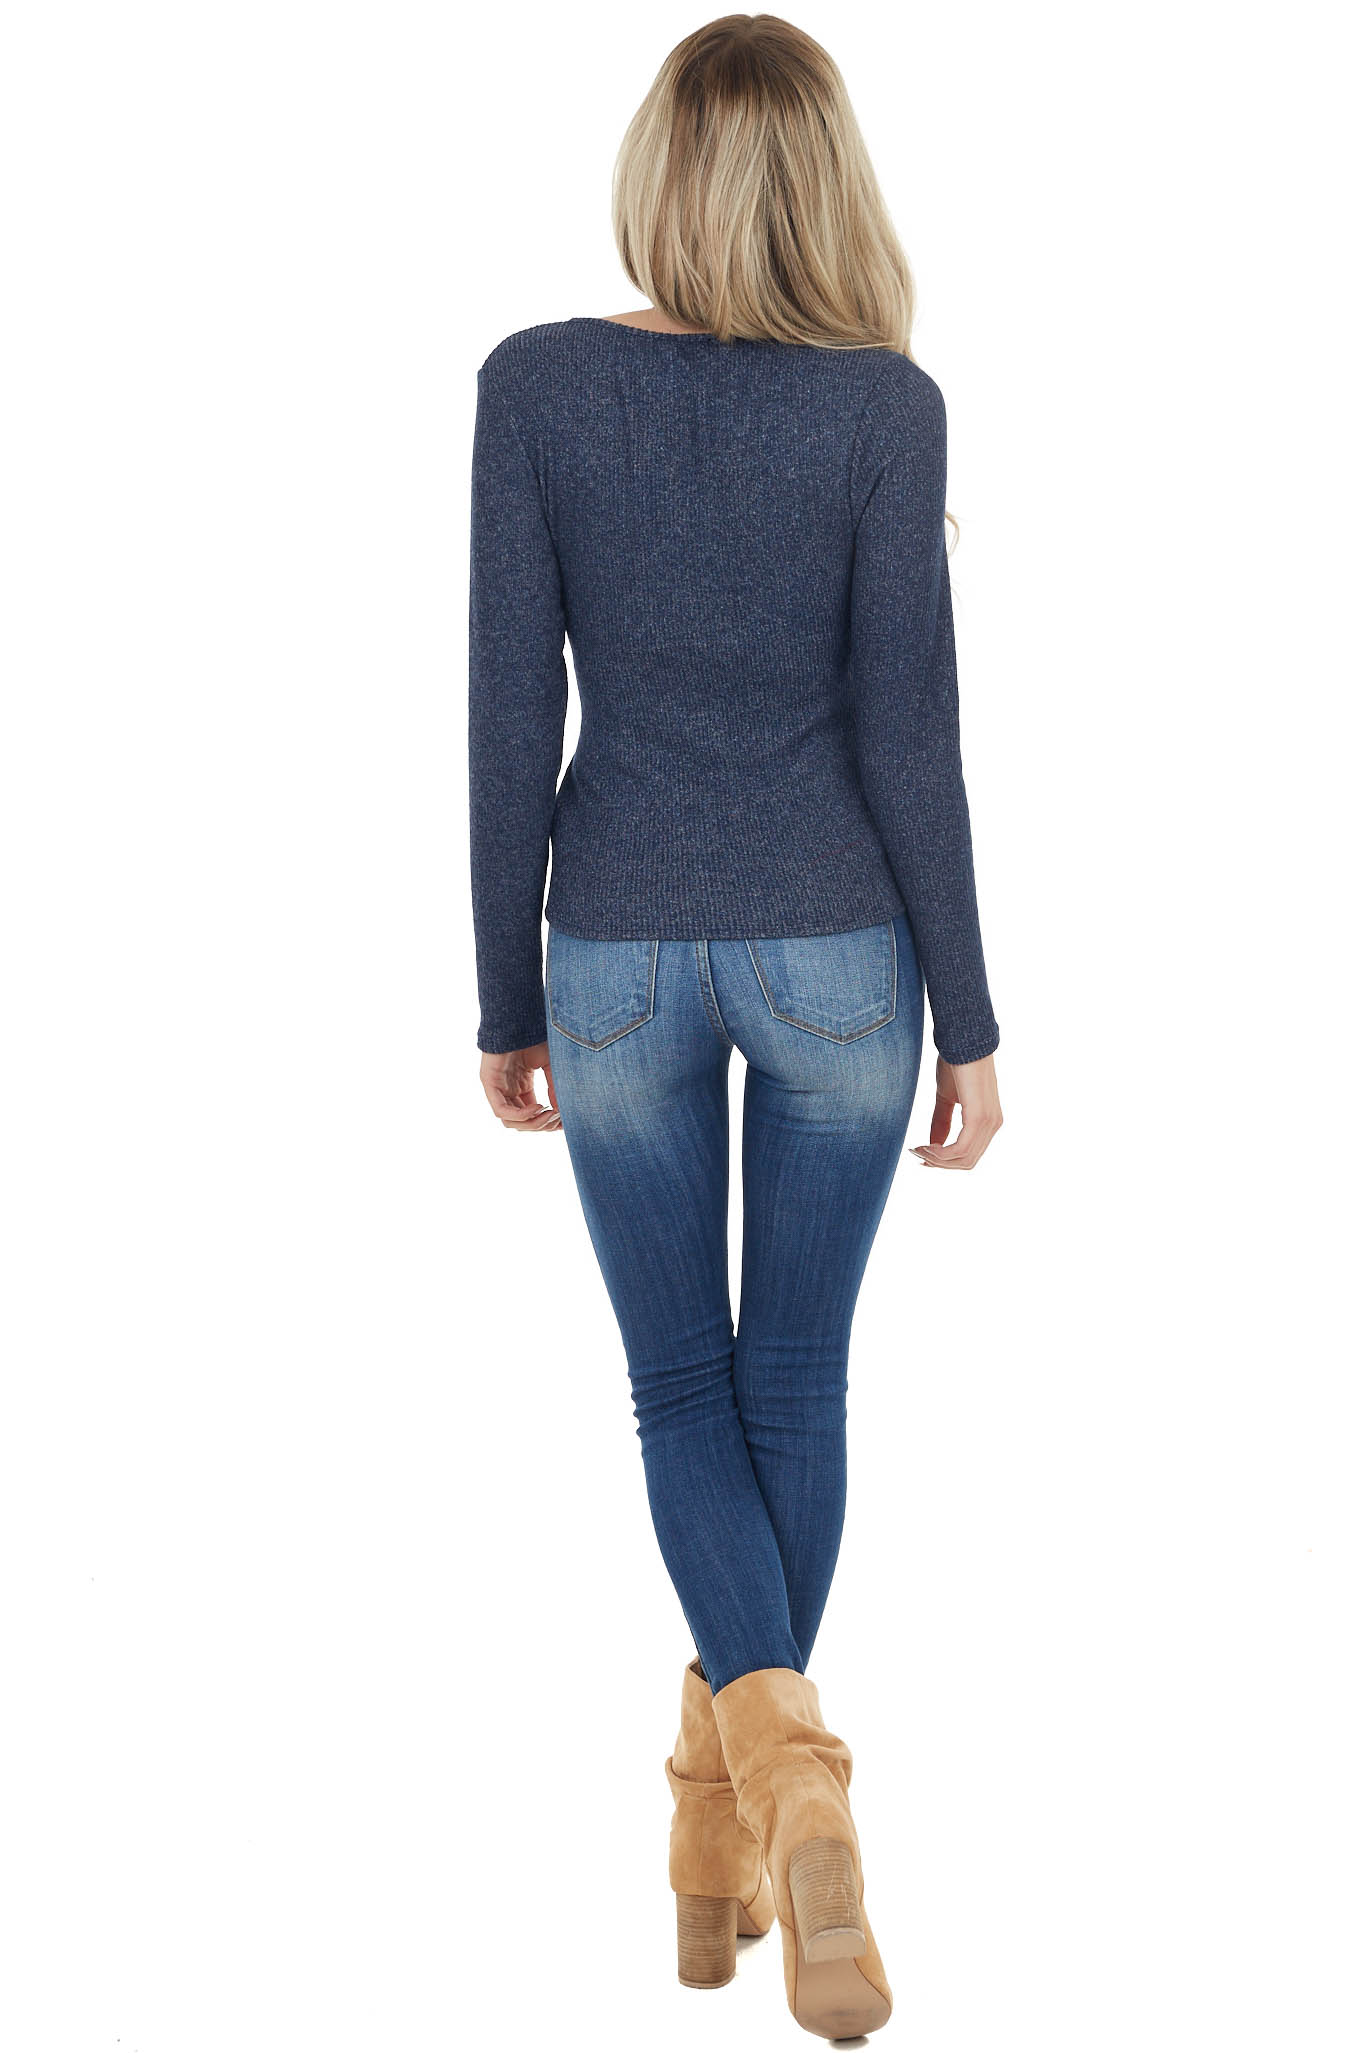 Navy Brushed Ribbed Knit Wrapped Surplice Sweater with Tie